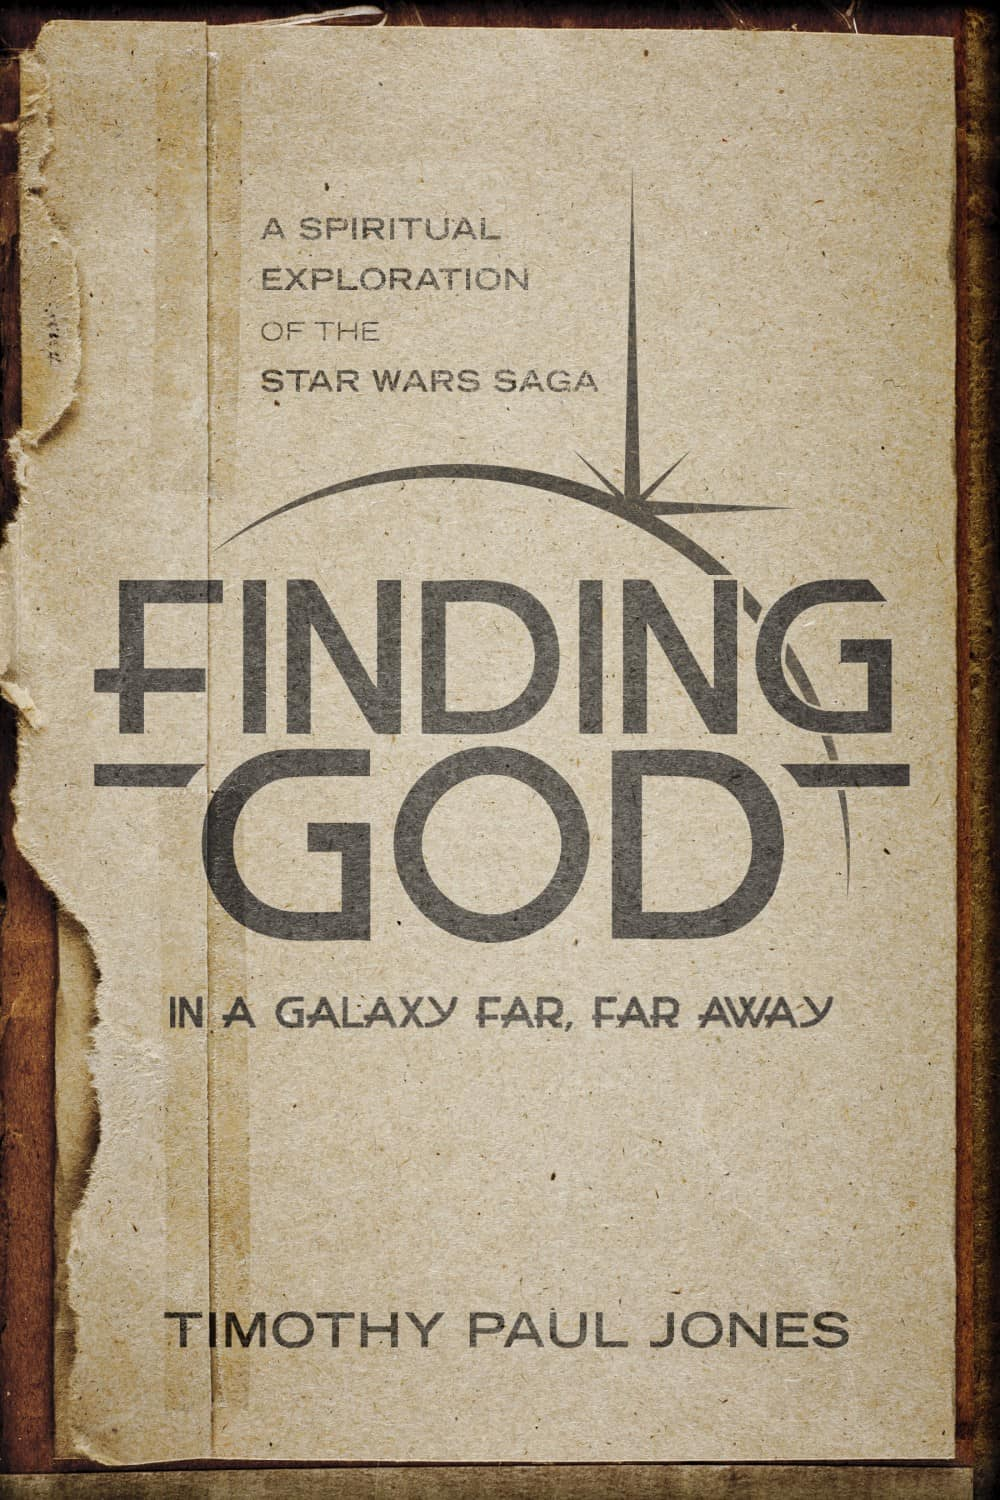 Finding_God_Star_Wars